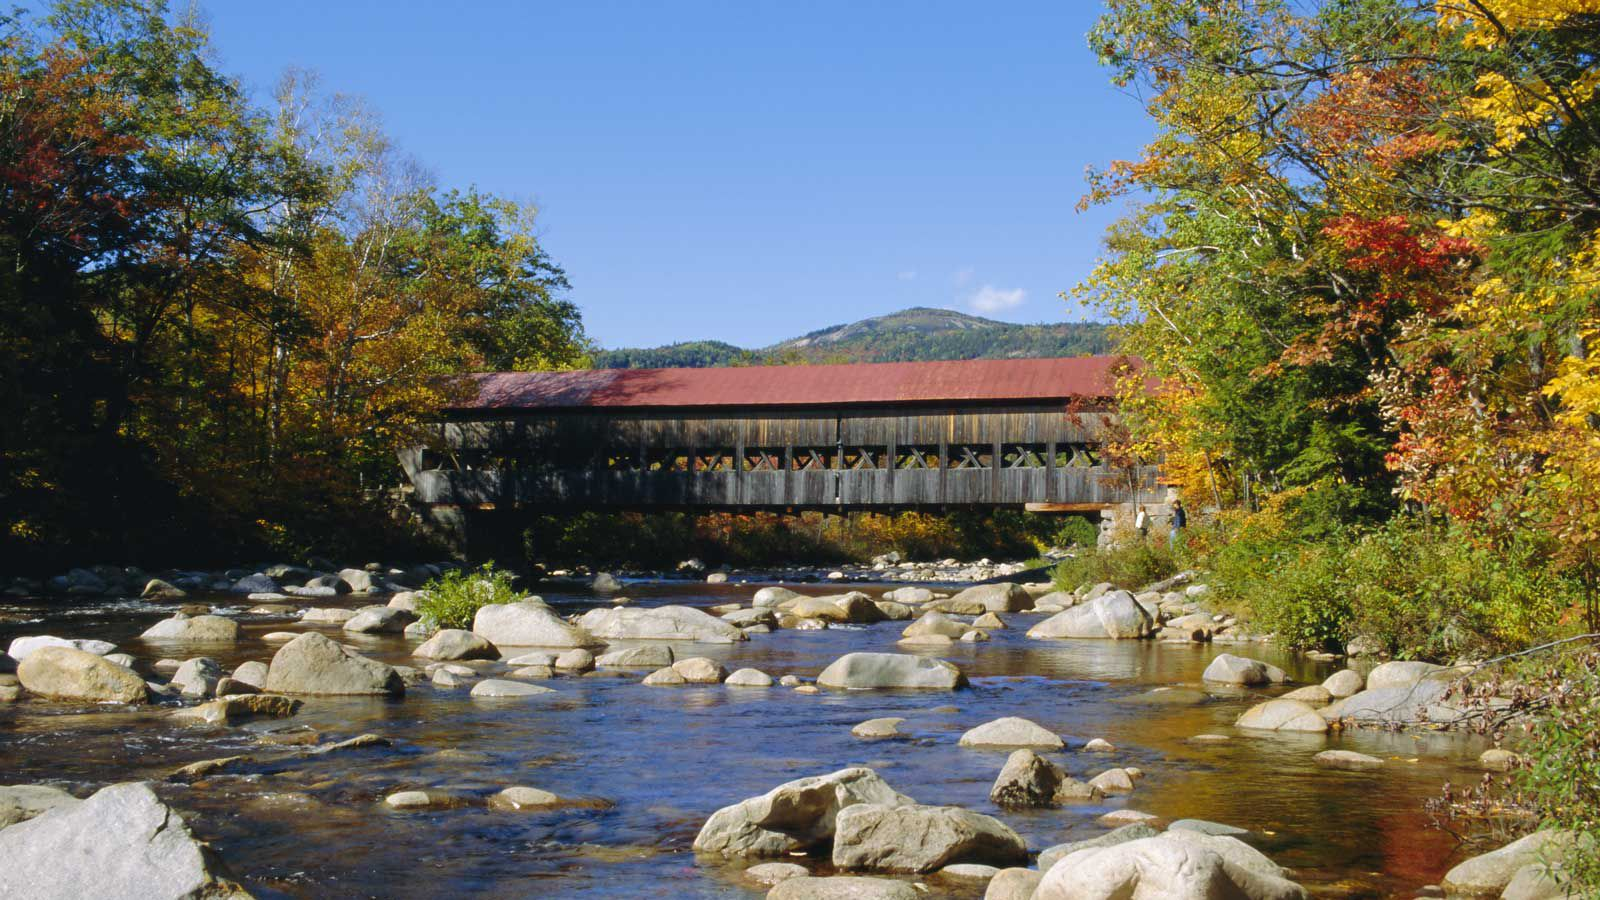 Albany Covered Bridge over the Swift River, Kancamagus Highway, New Hampshire, USA